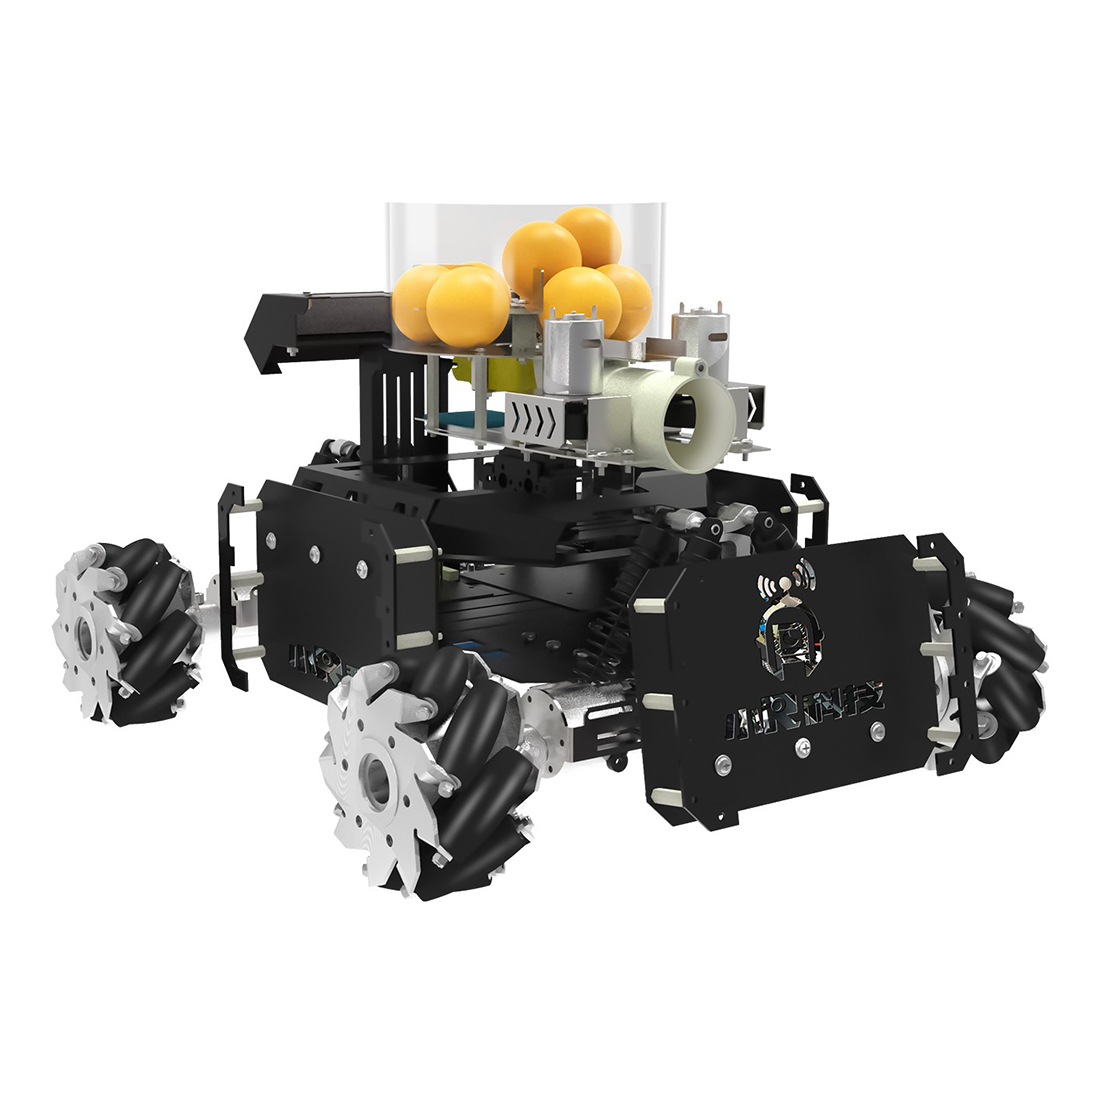 DIY Steam Omni Wheel Turret Chariot VR Video Control XR Master Robot For STM32 Model Educational Toy Gift For Kid Adult - Black